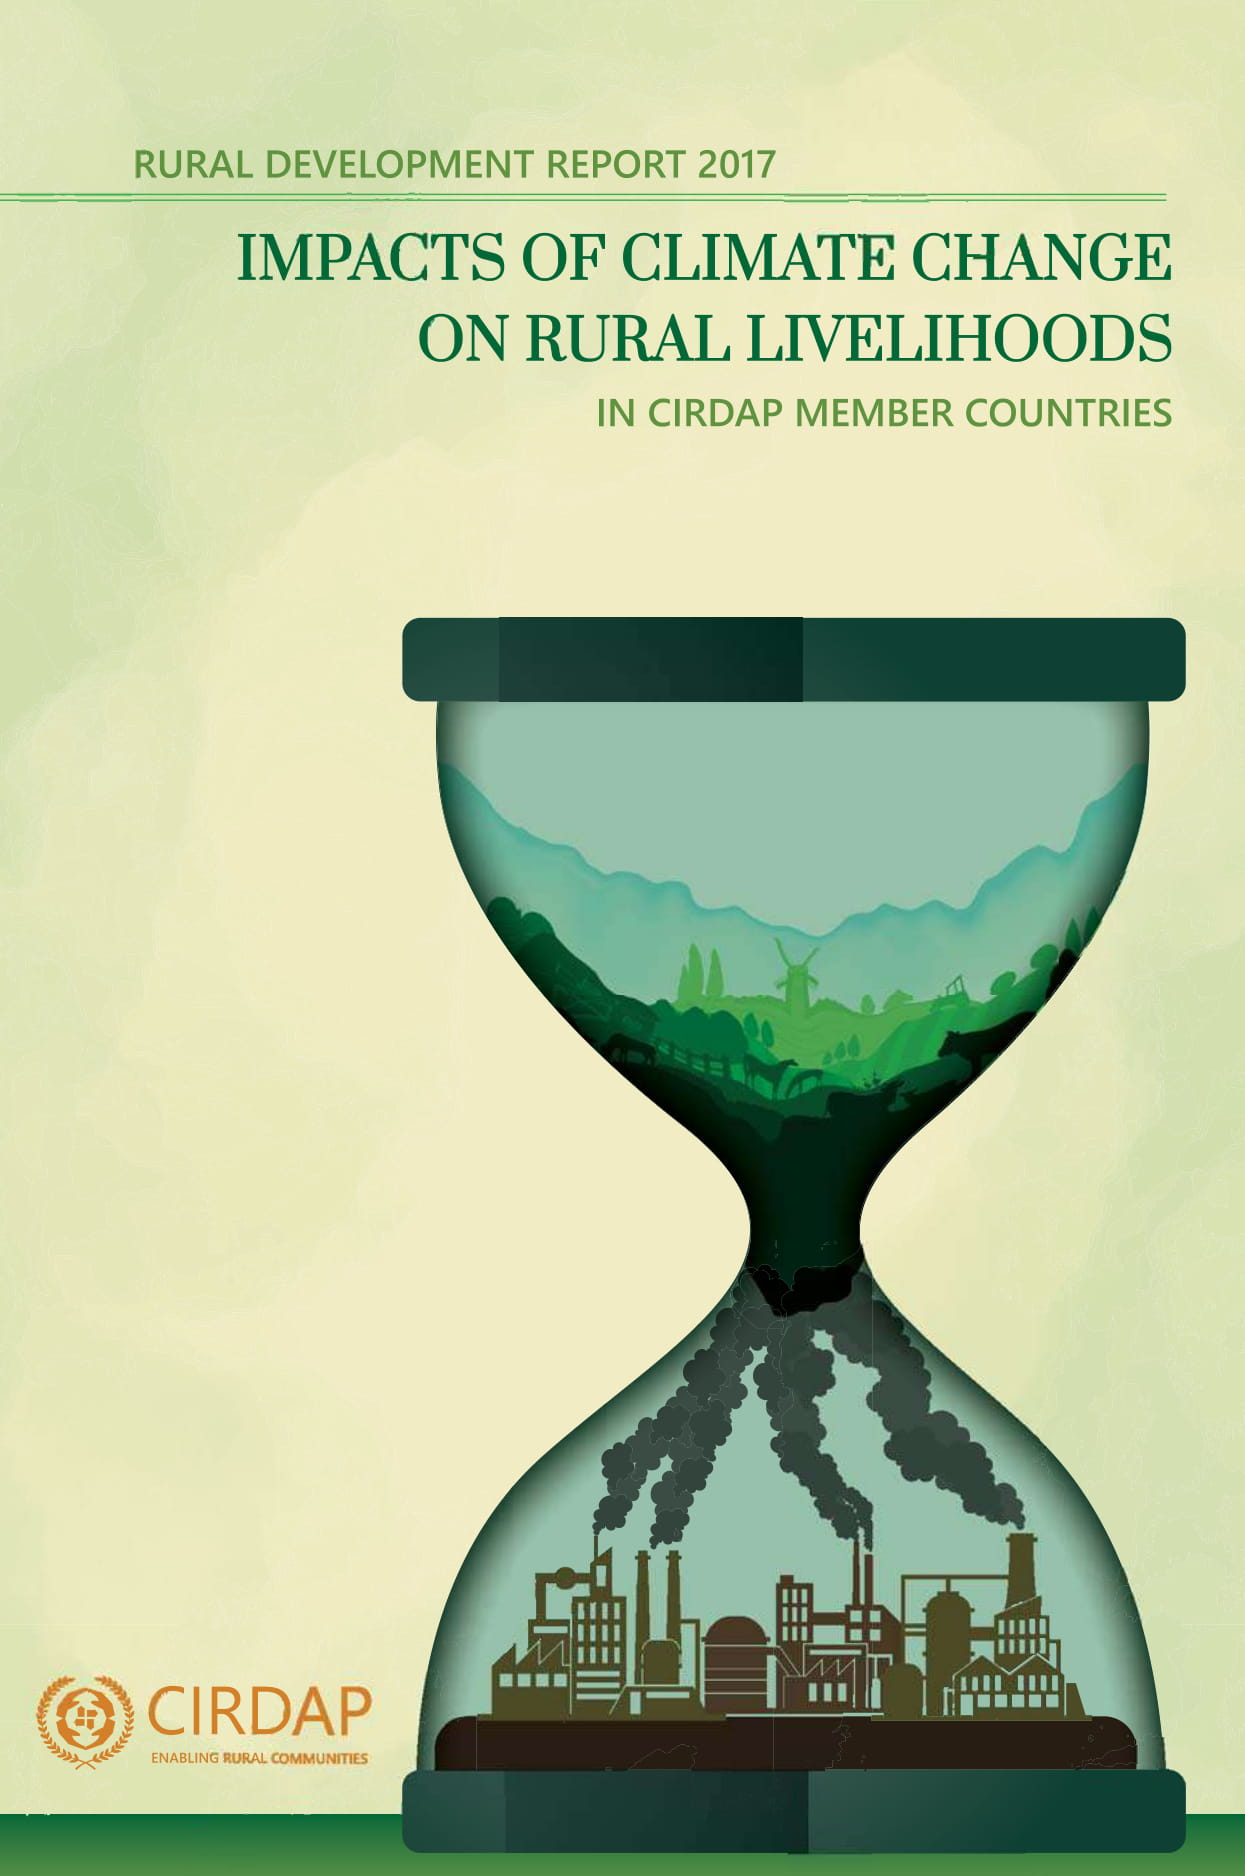 Impacts of Climate Change on Rural Livelihoods in CIRDAP Member Countries